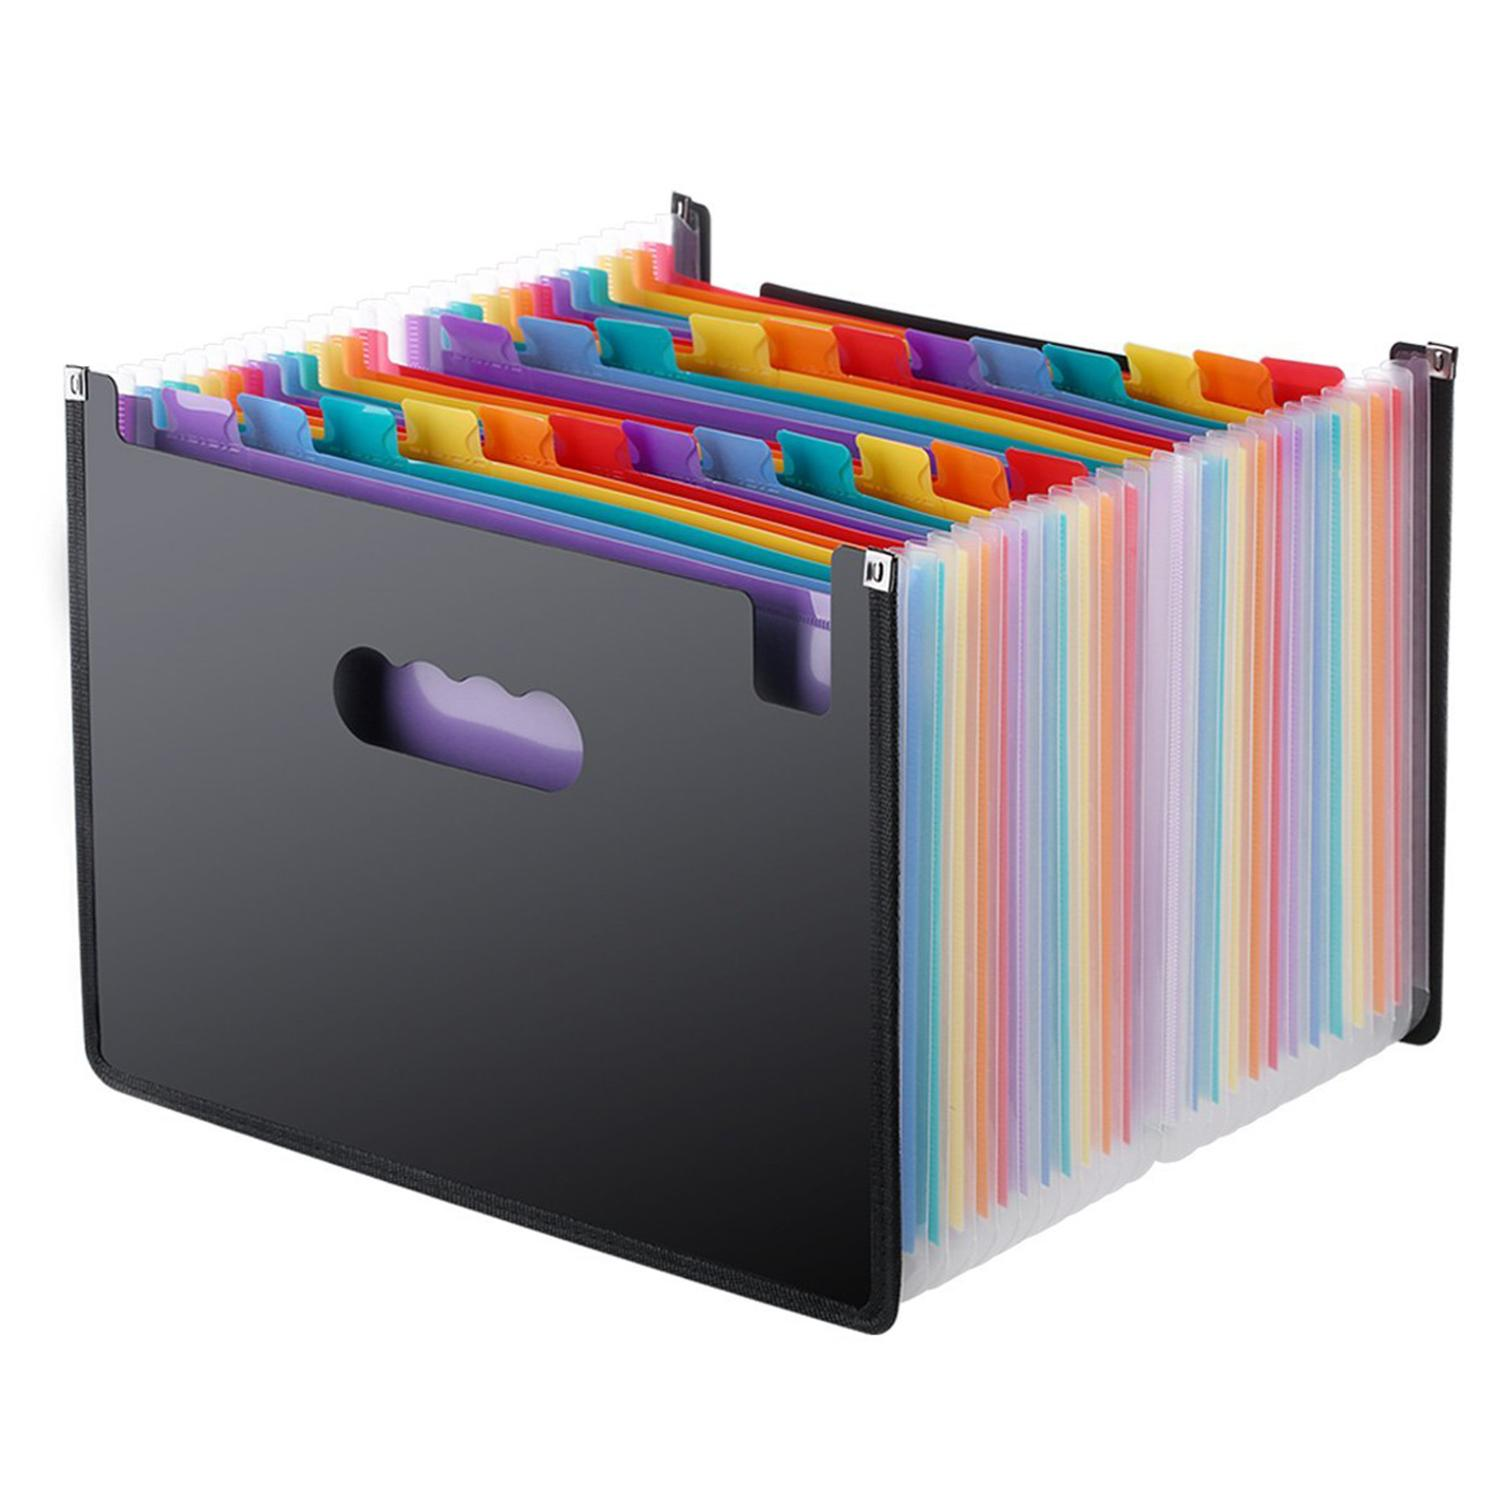 4a084fc6316 Folder Organizer for sale - Filing Folders prices